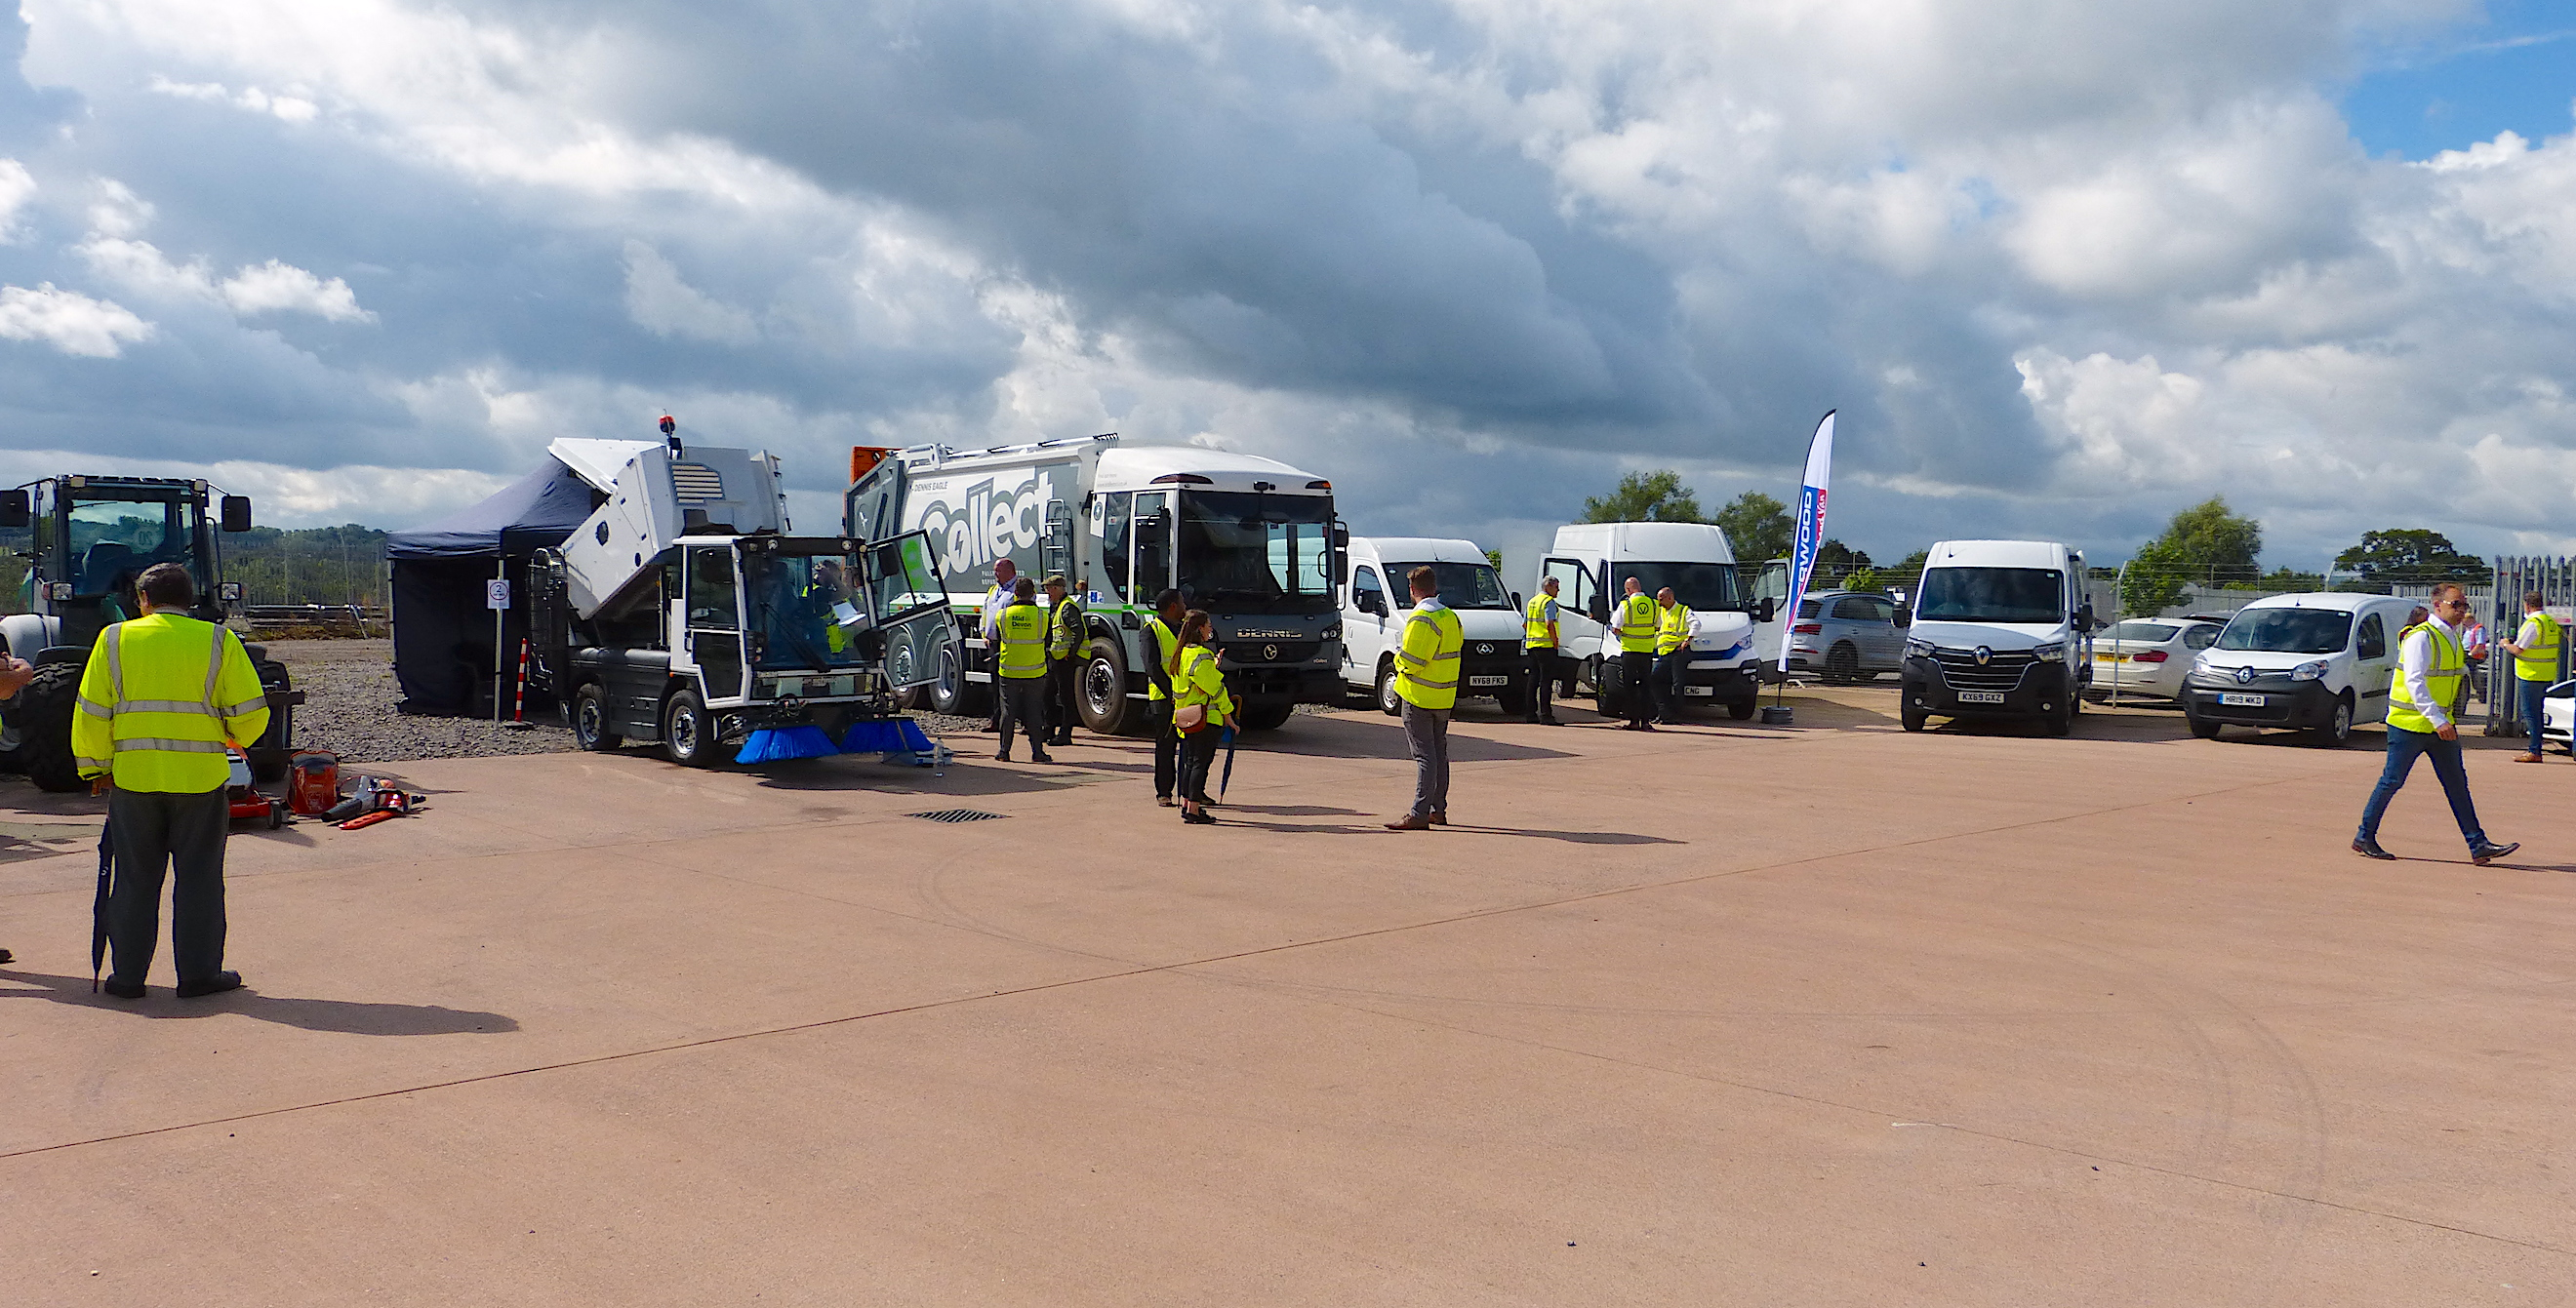 SFS hosts socially distanced Low Carbon Emissions Vehicles event